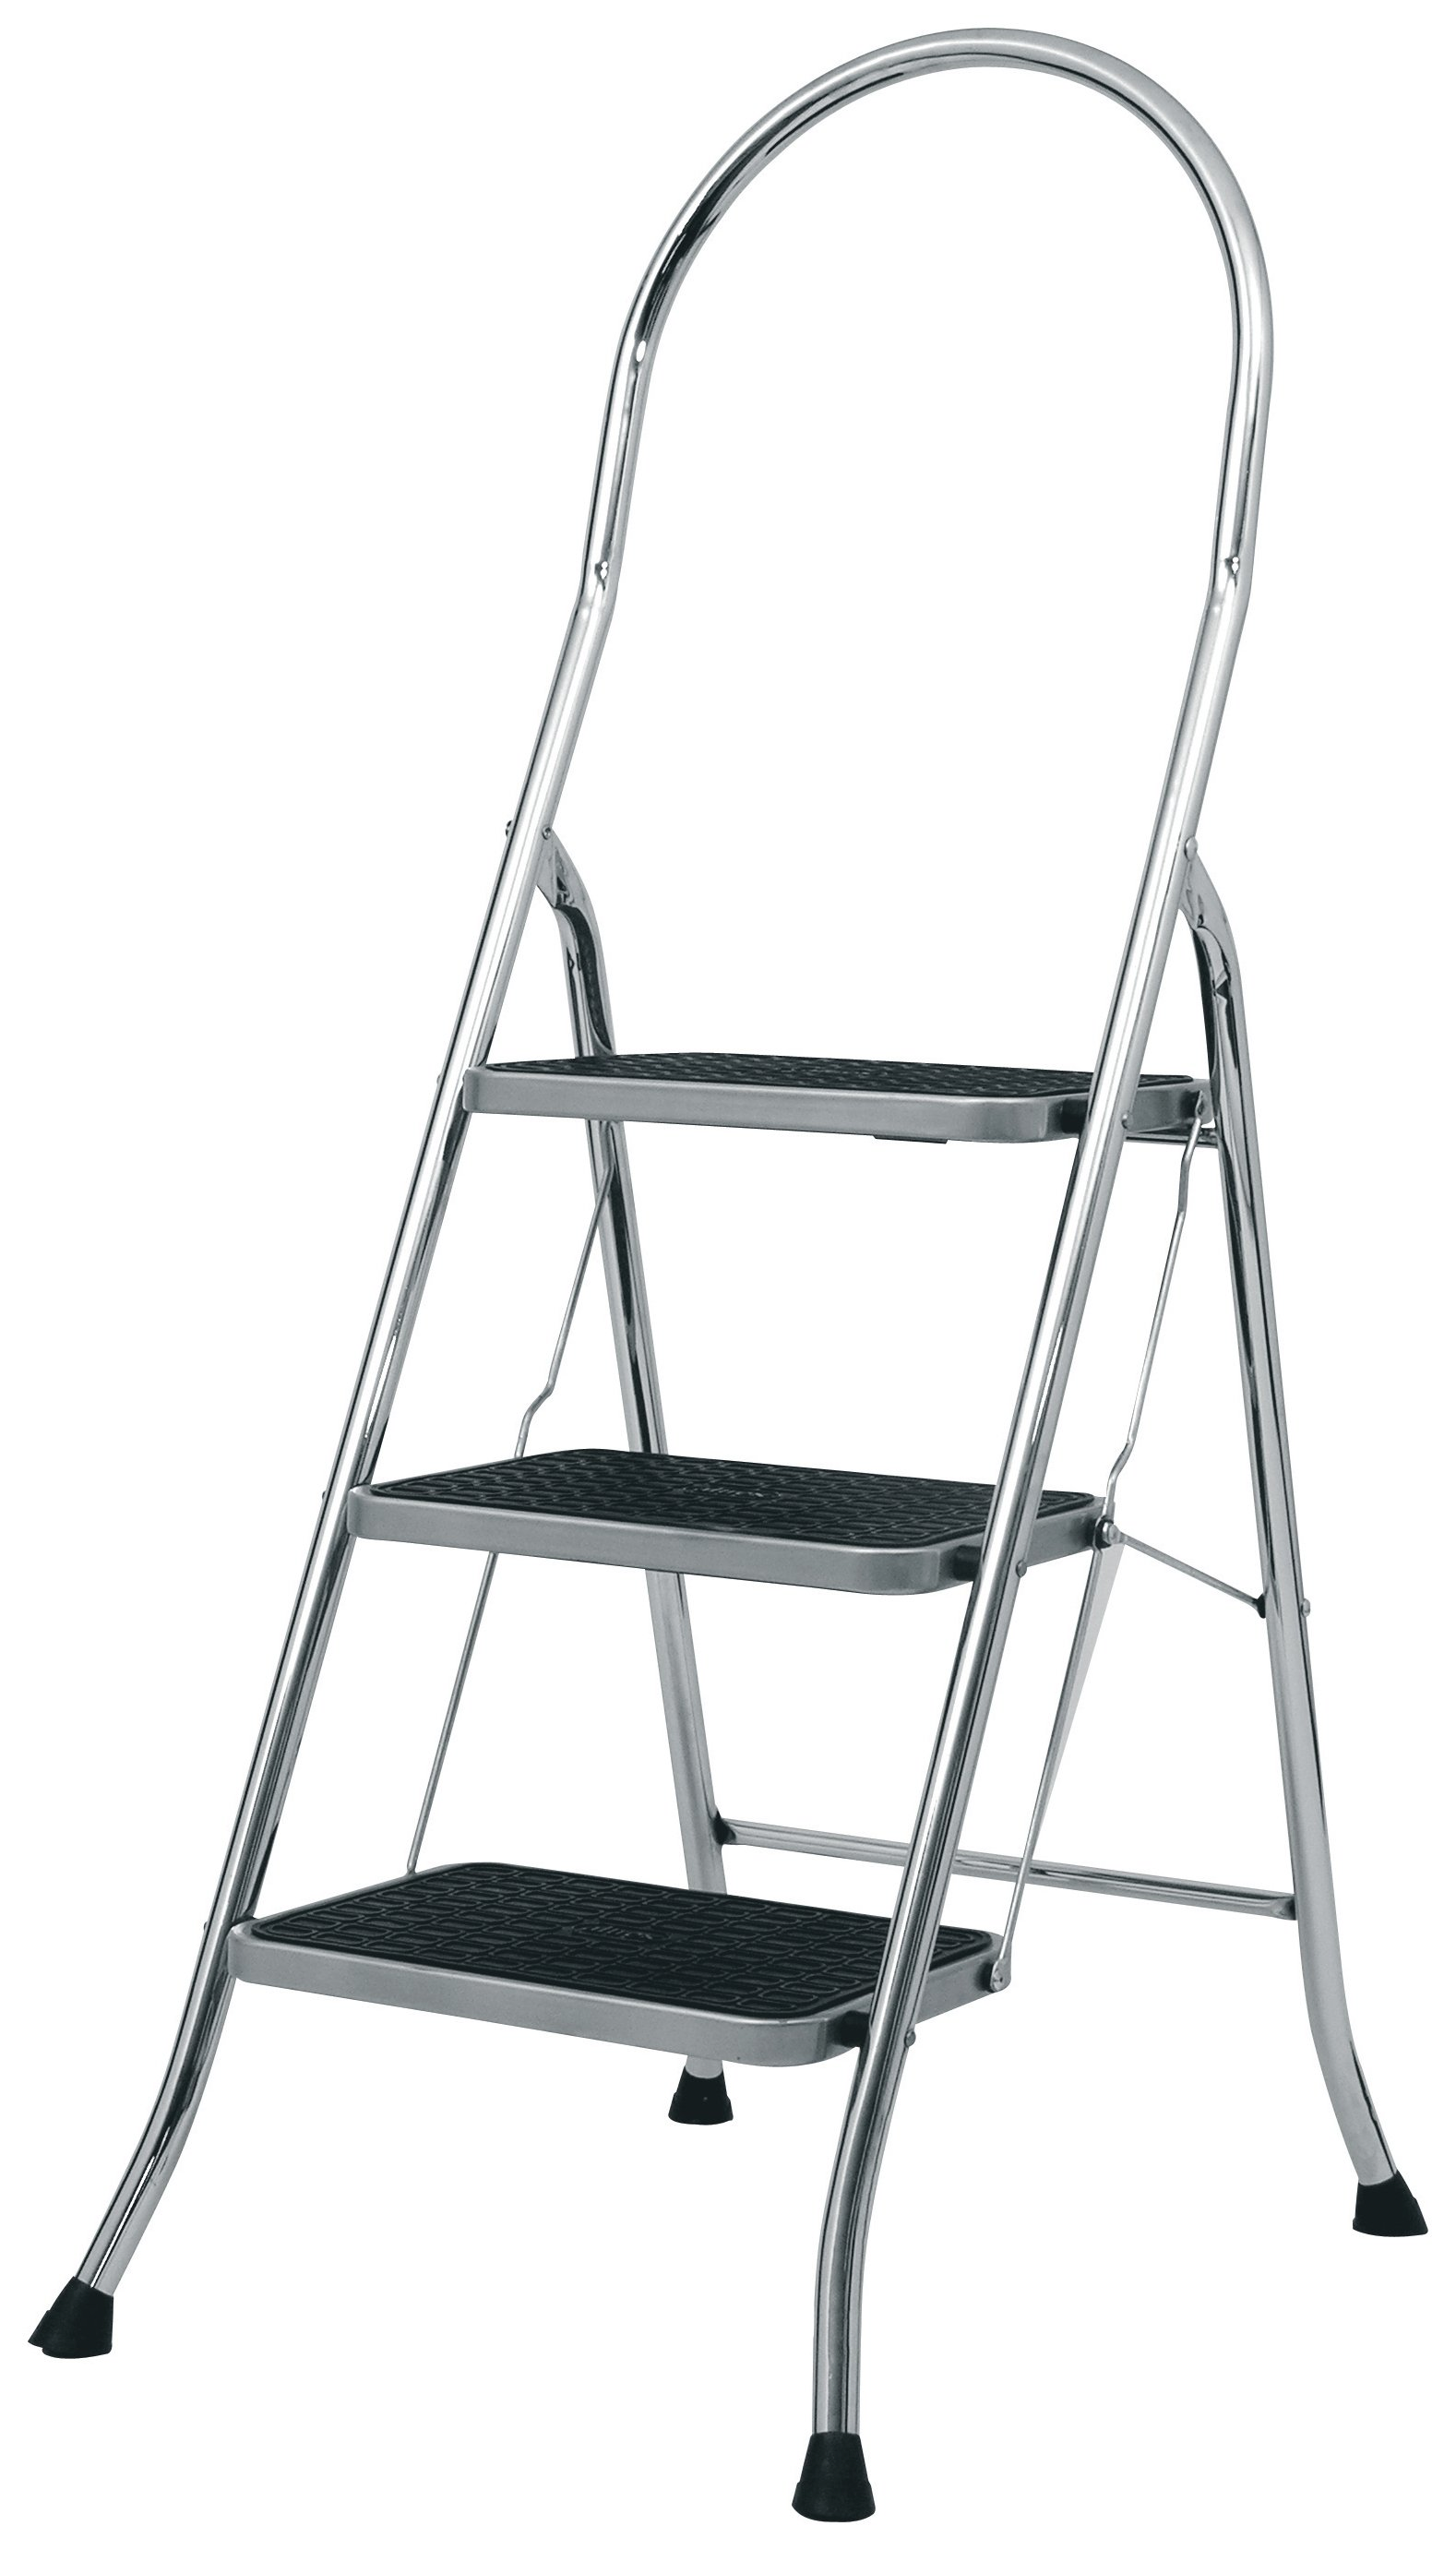 Abru 3 Step Steel Ladder And Tool Tray 248m Max Swh